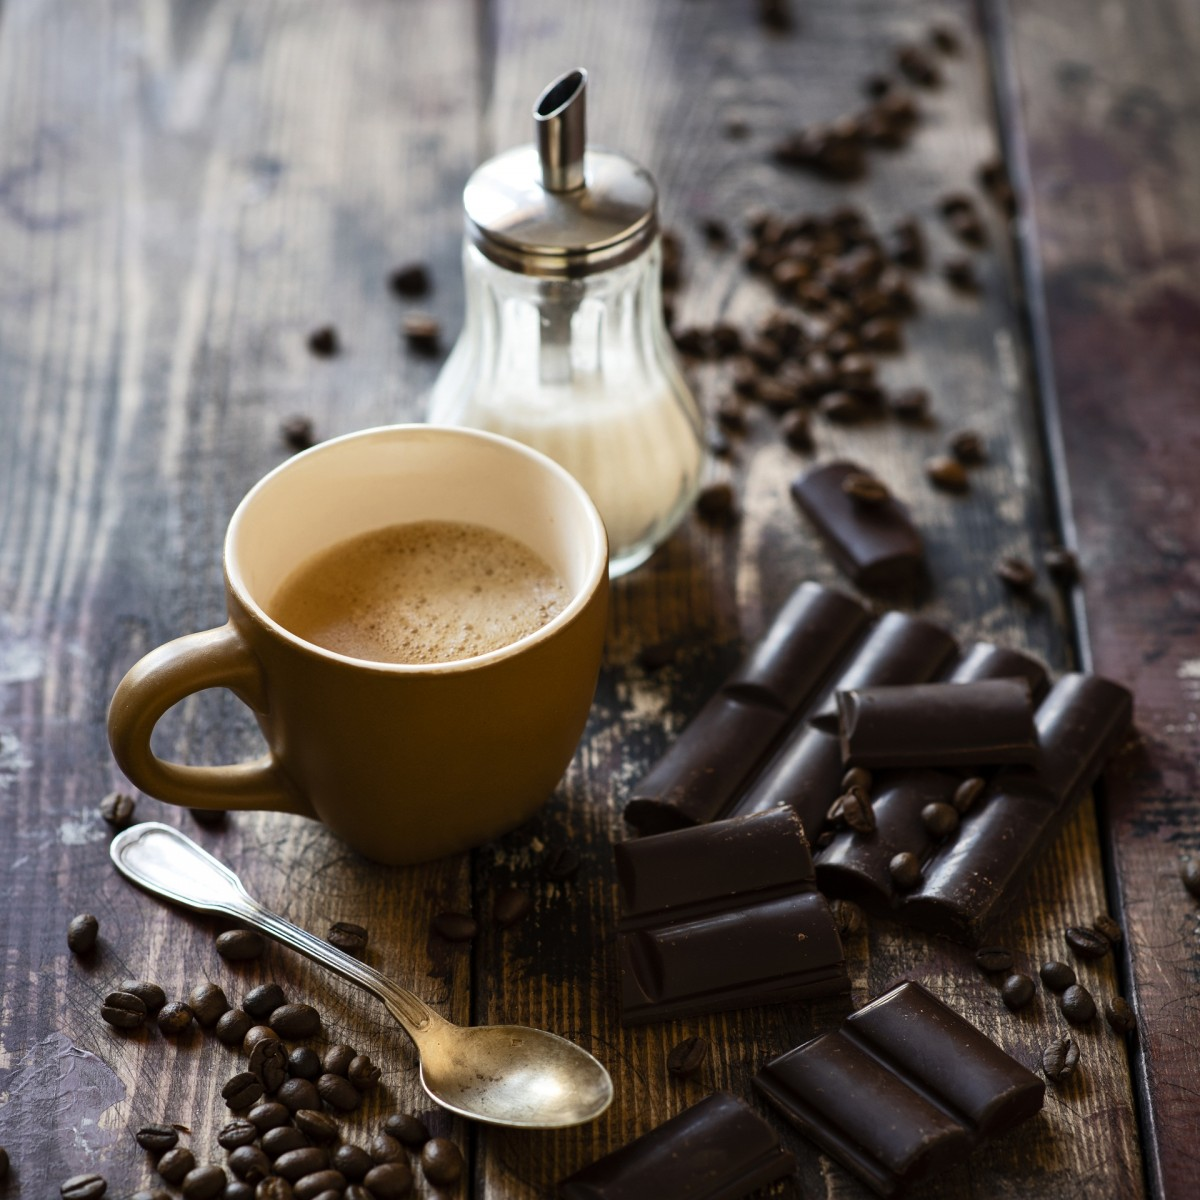 Jigsaw Puzzle Solve jigsaw puzzles online - Coffee and chocolate